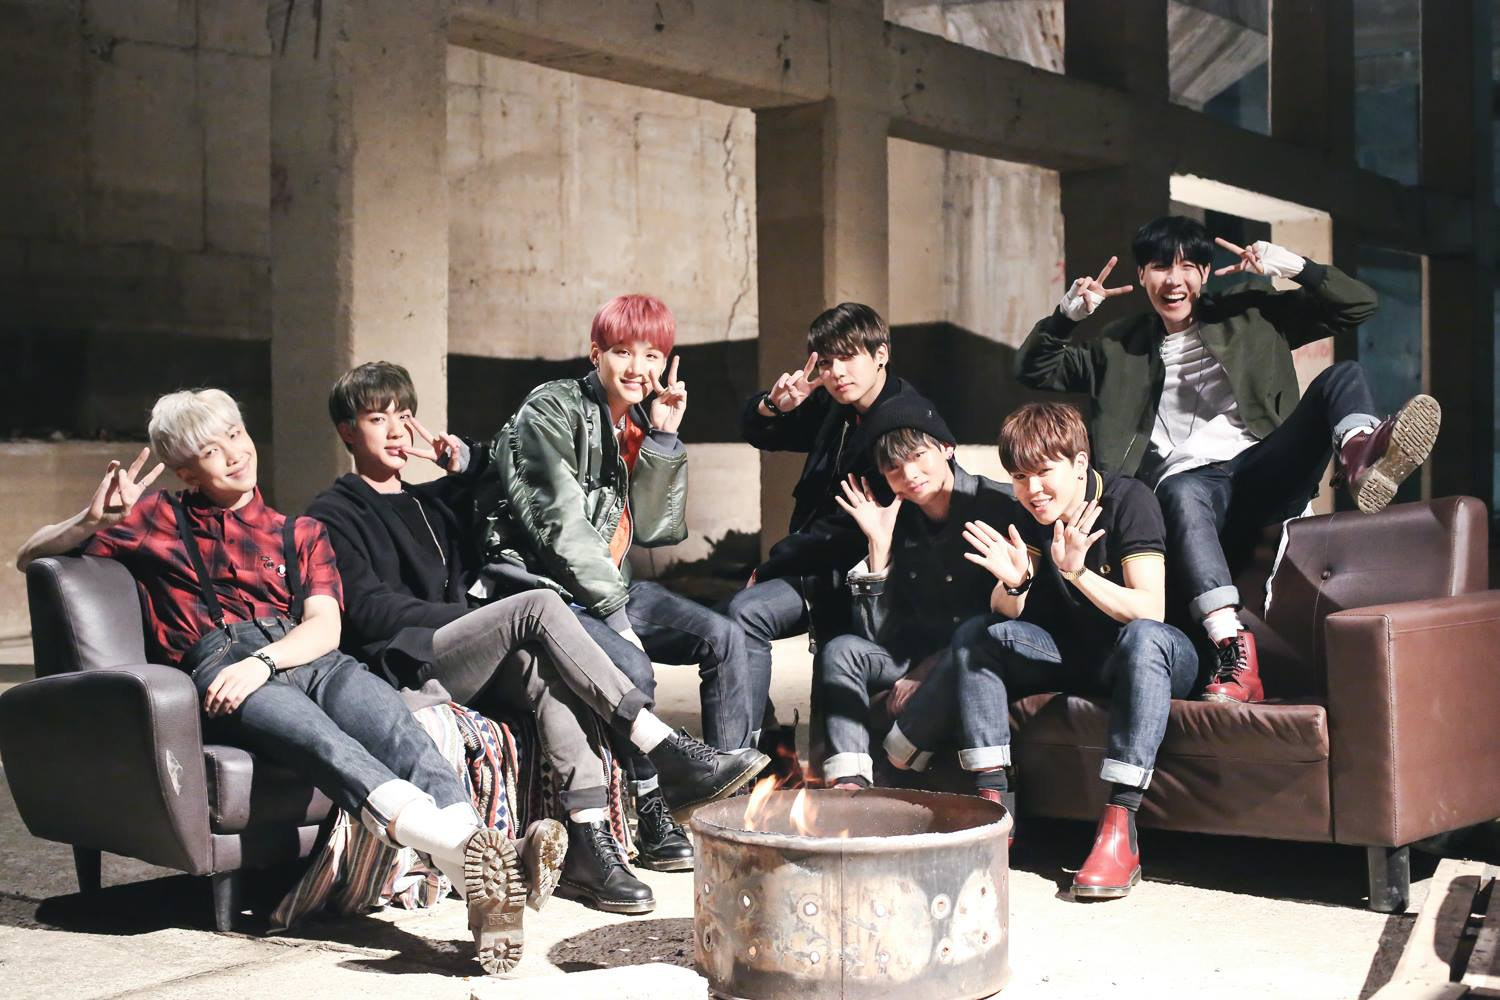 Picture/FB] 화양연화 pt 1 'I NEED U' Sketch photo [150505] |